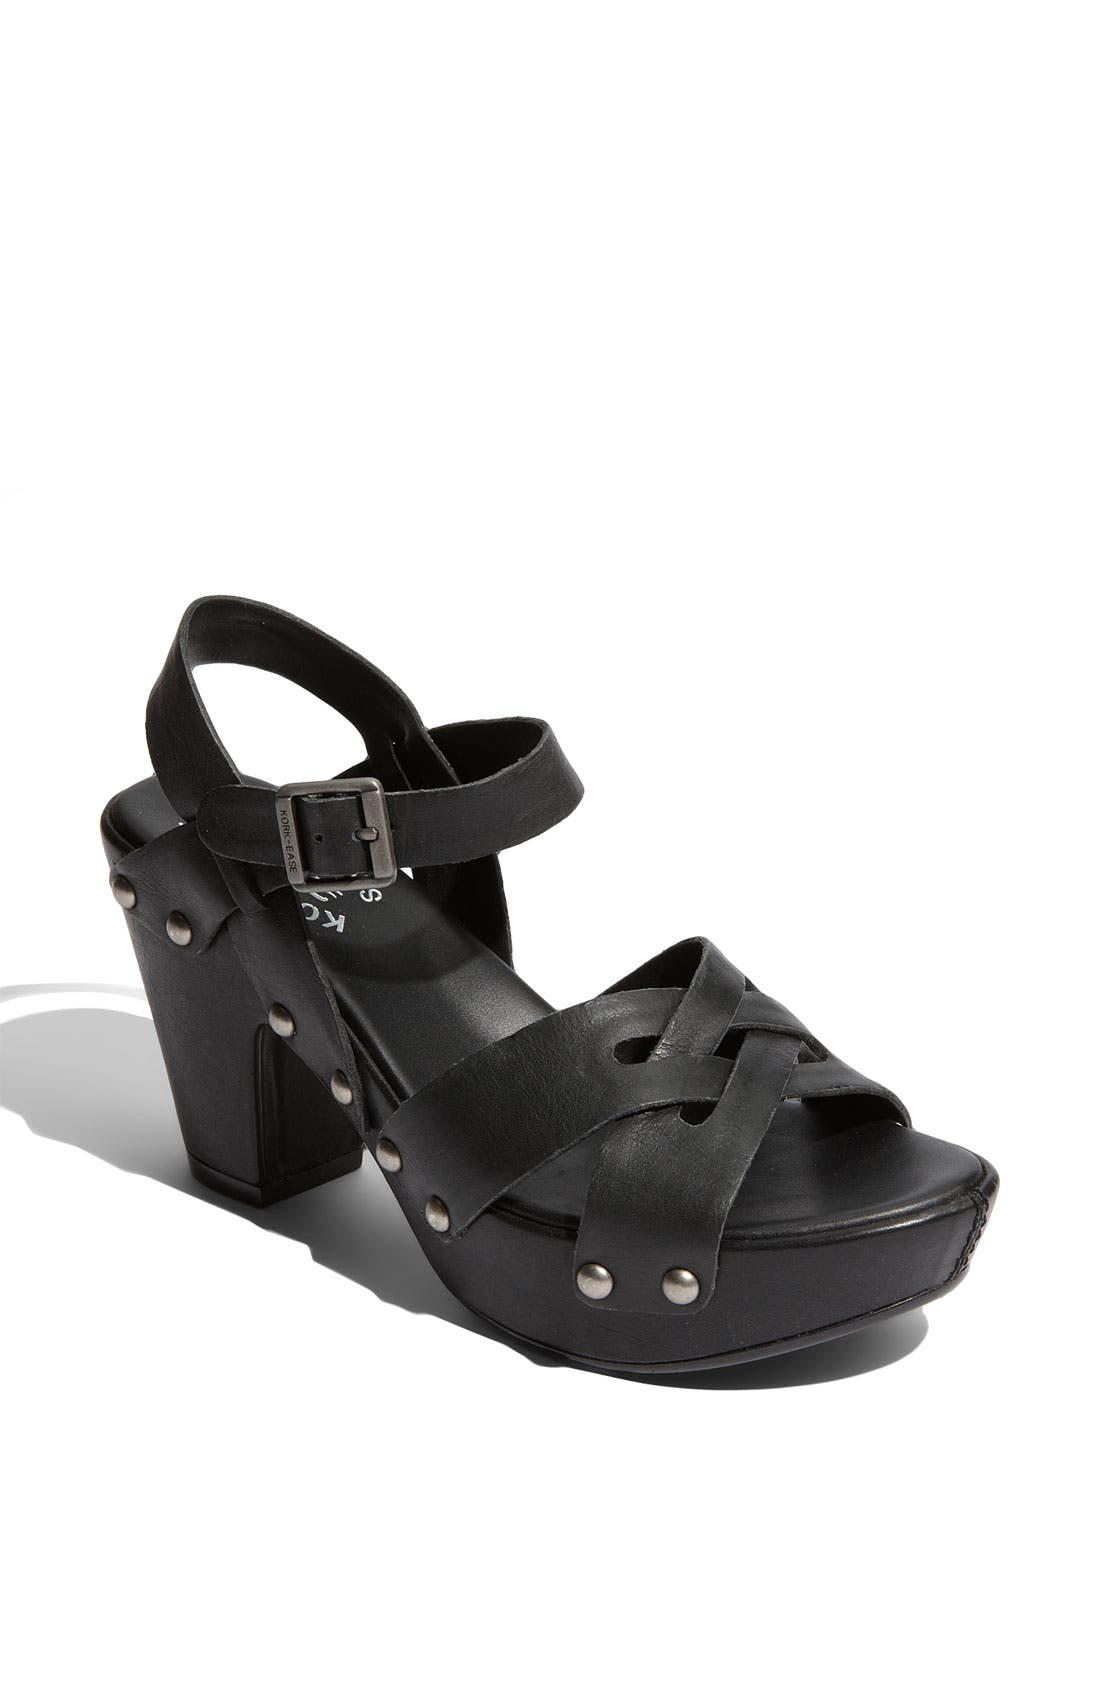 Alternate Image 1 Selected - Kork-Ease 'Deborah' Sandal